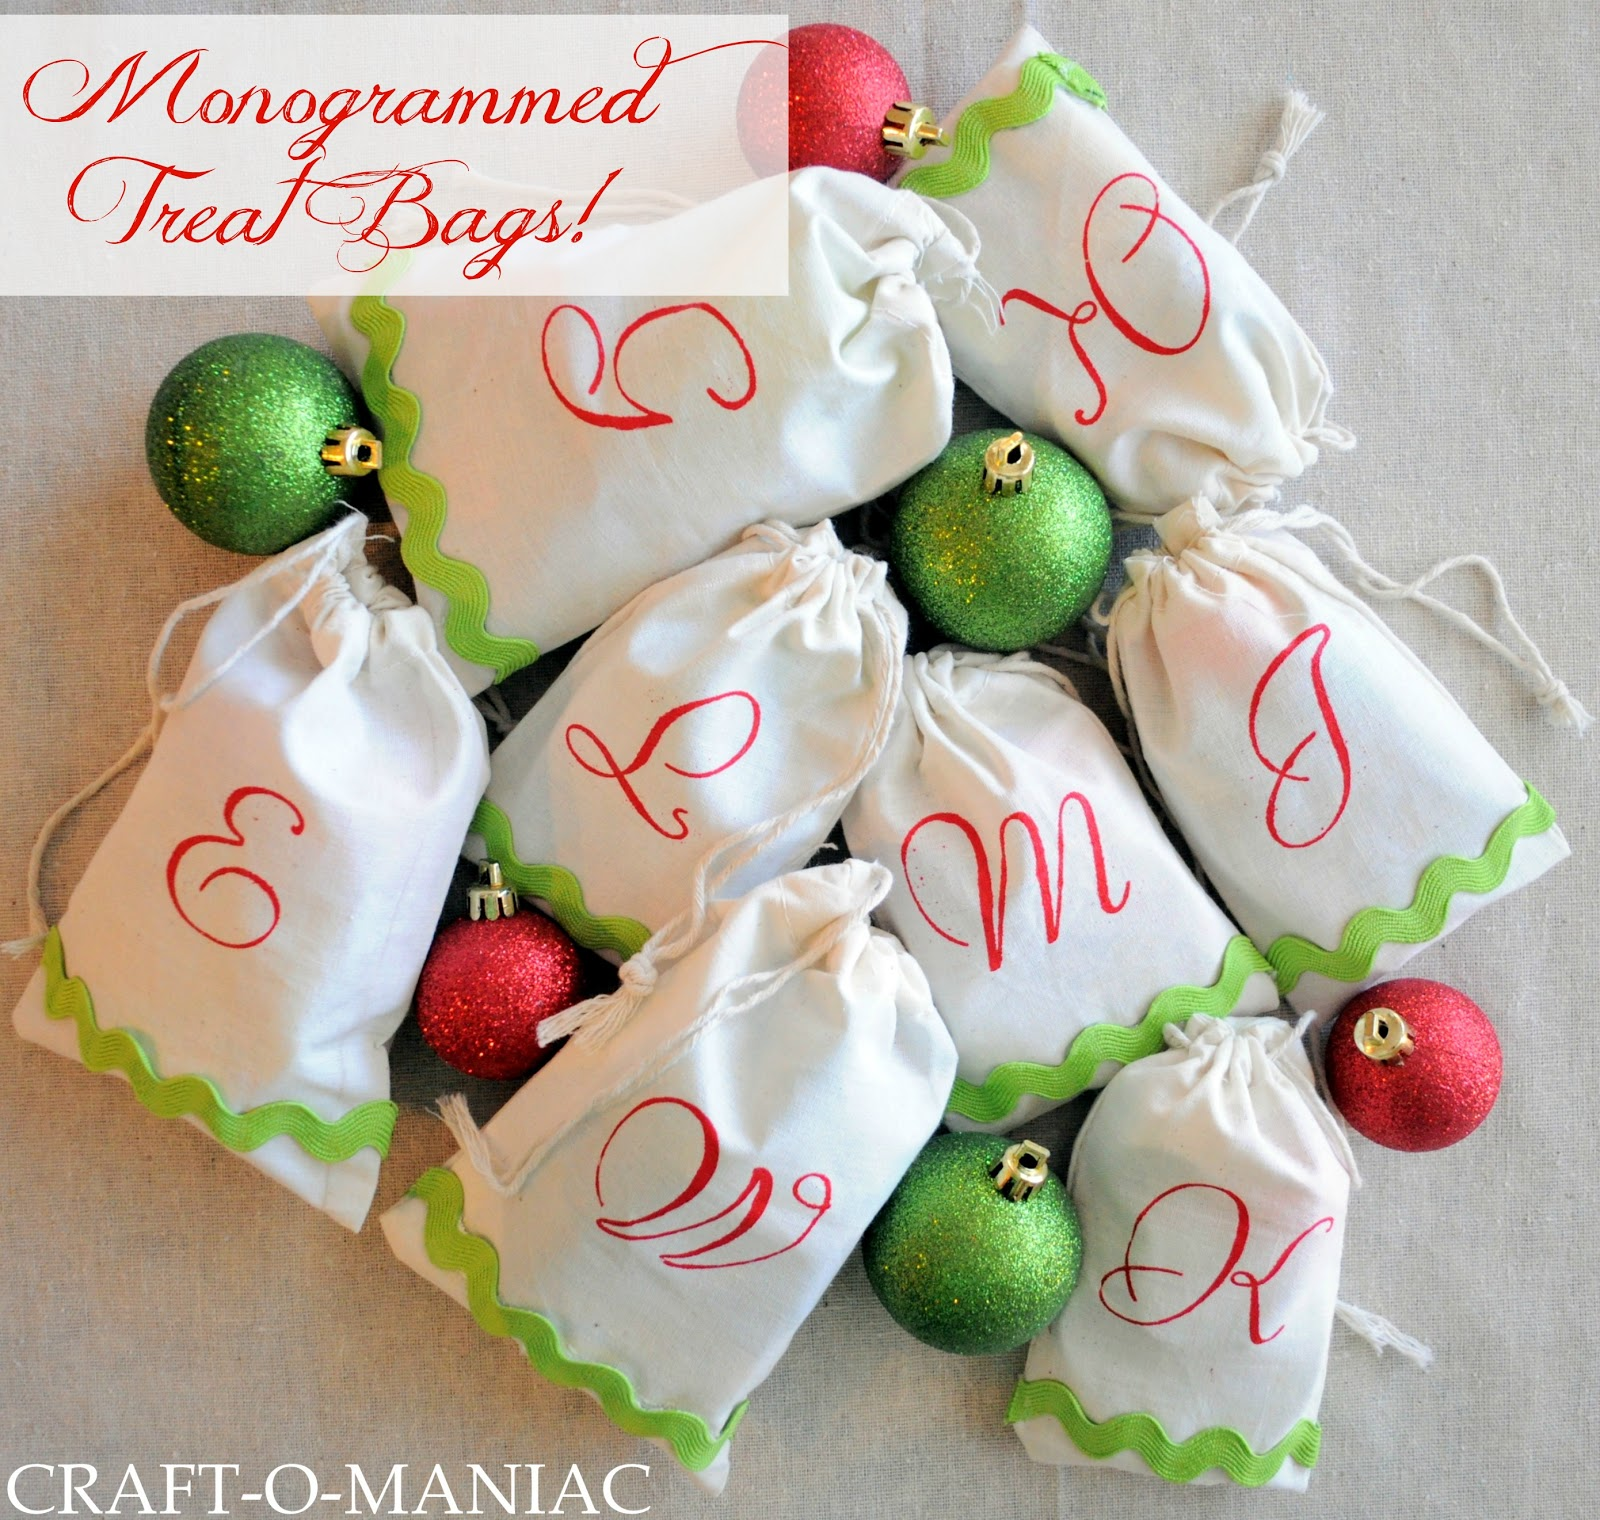 Personalized Handmade Christmas Gift Guide: 12 Terrific Handmade Christmas Gift Ideas!